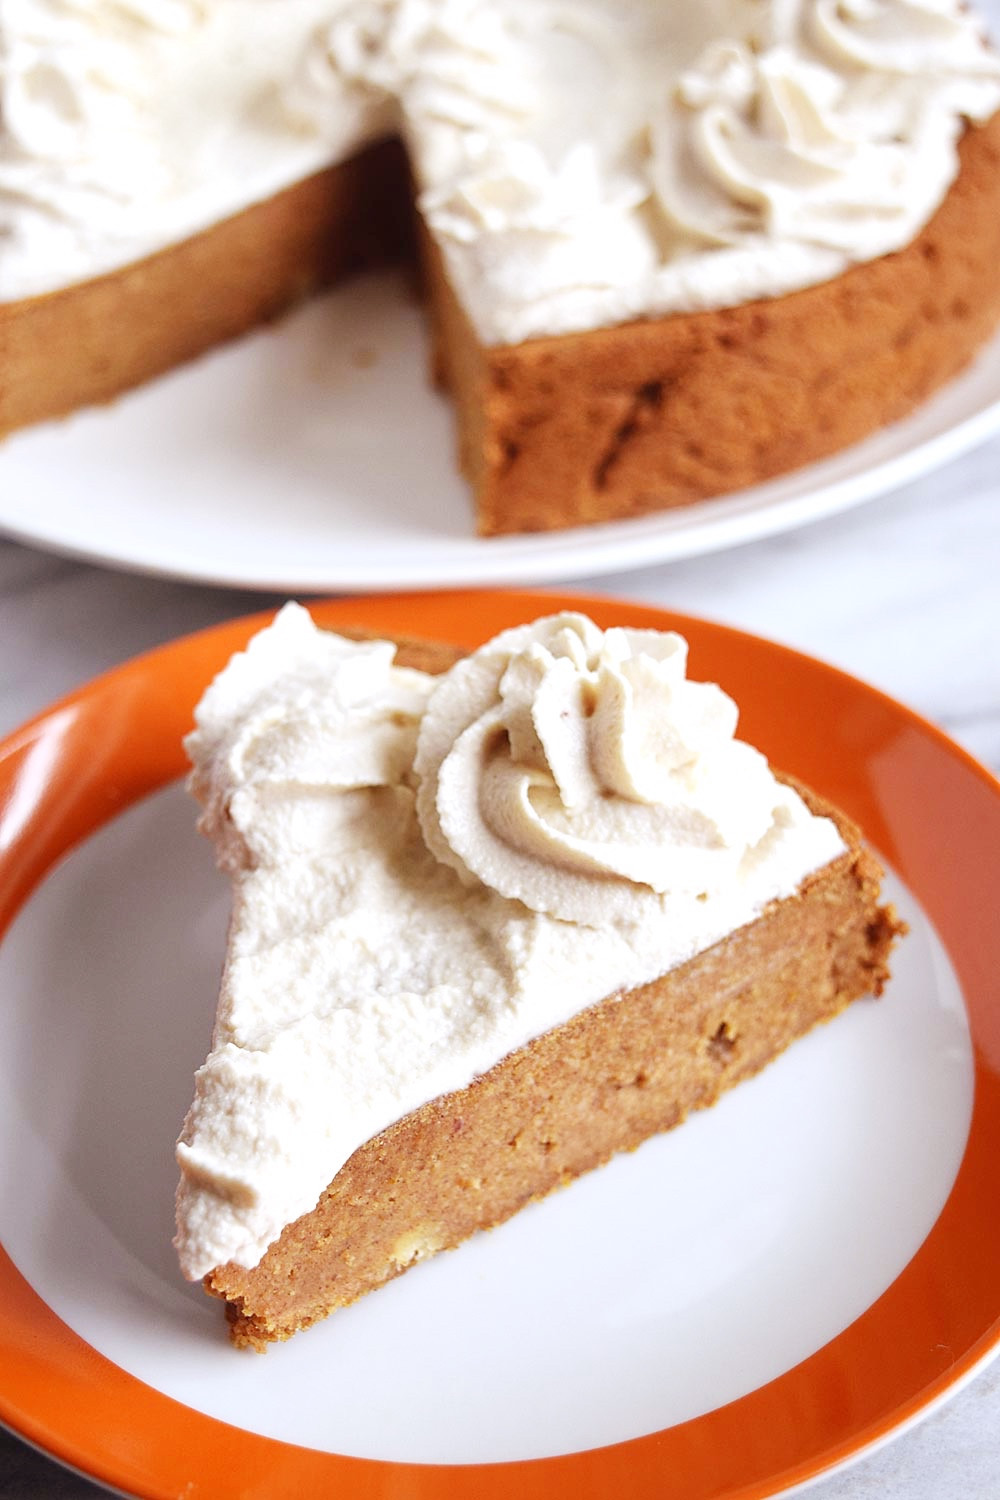 Pumpkin Cake With Cream Cheese Frosting  Vegan Pumpkin Cake with Cream Cheese Frosting Beaming Banana